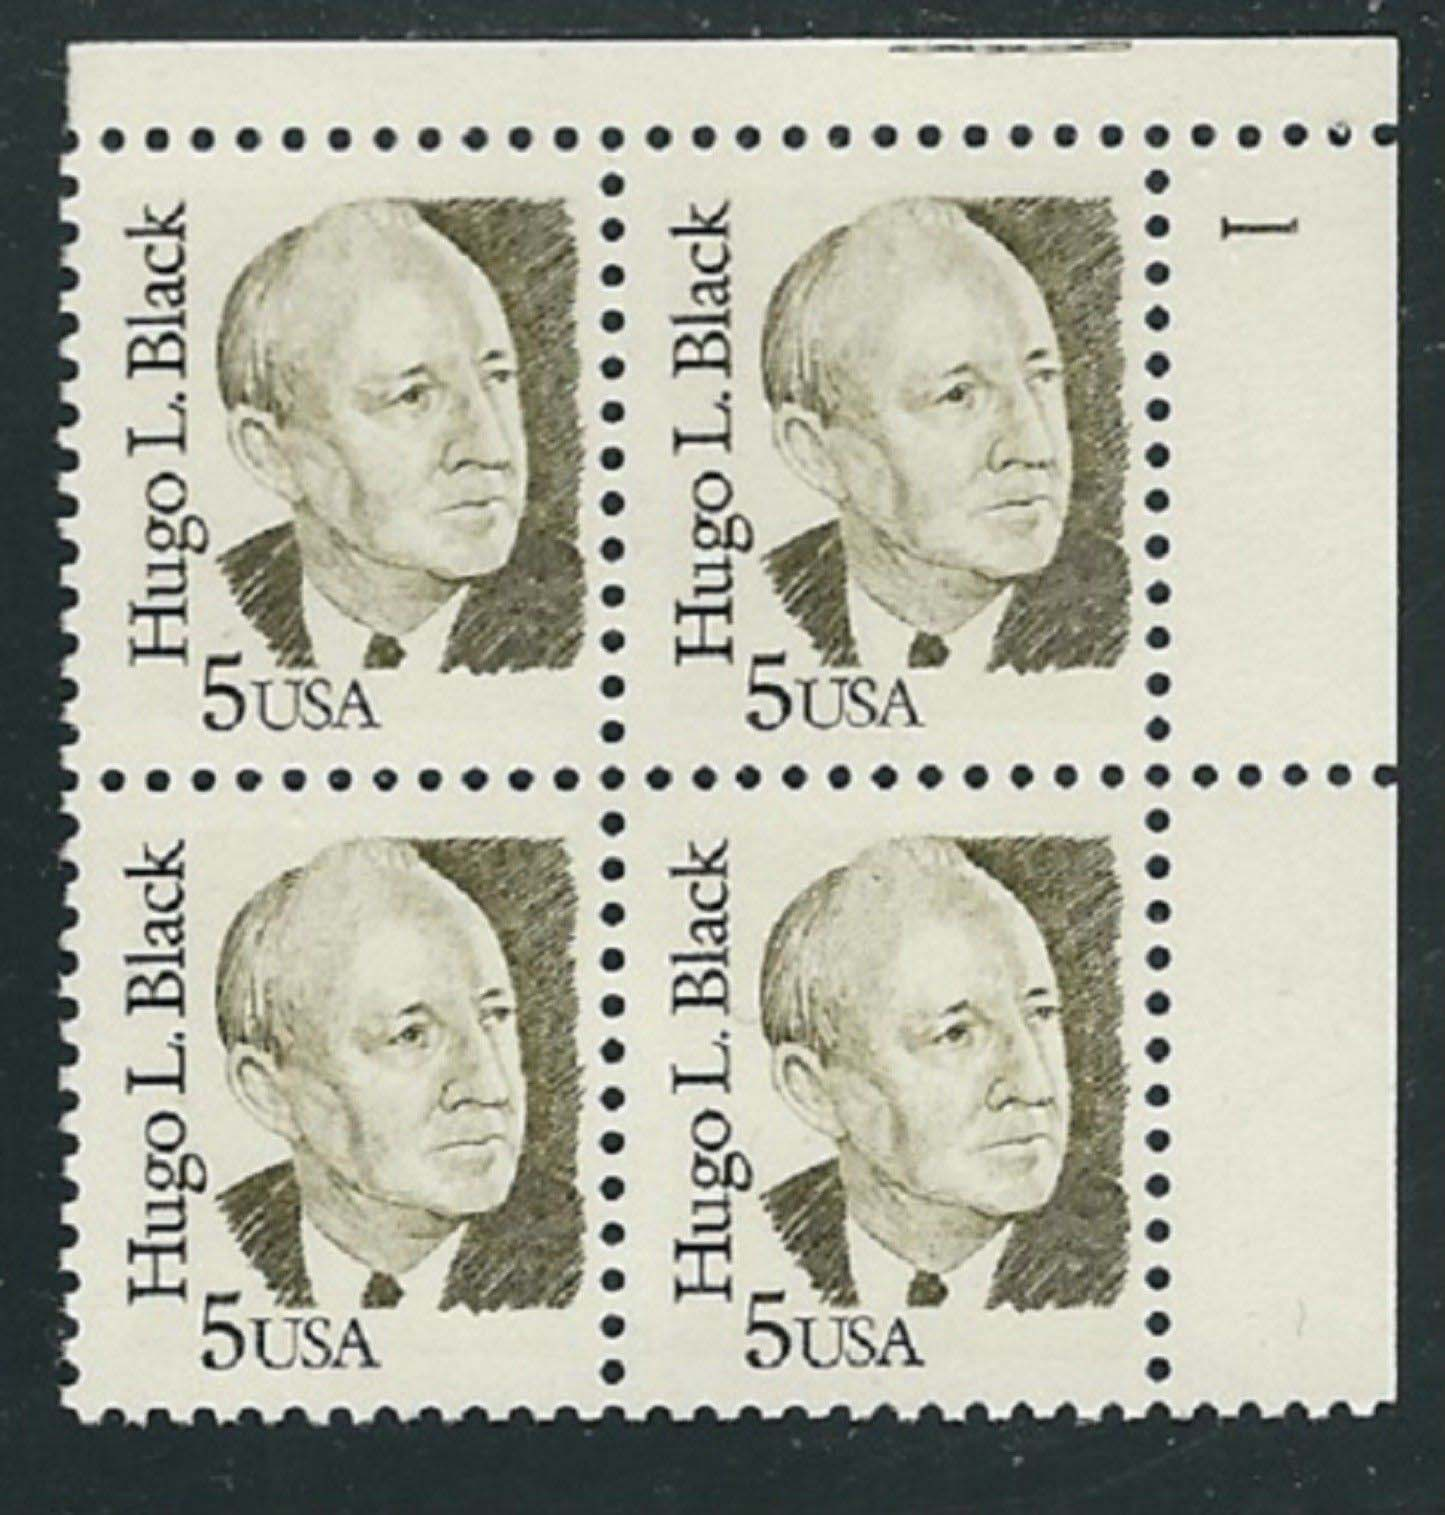 "Scott 2172 Plate Block (5 cents) <p> <a href=""/images/USA-Scott-2172-PB.jpg""><font color=green><b>View the image</a></b></font>"